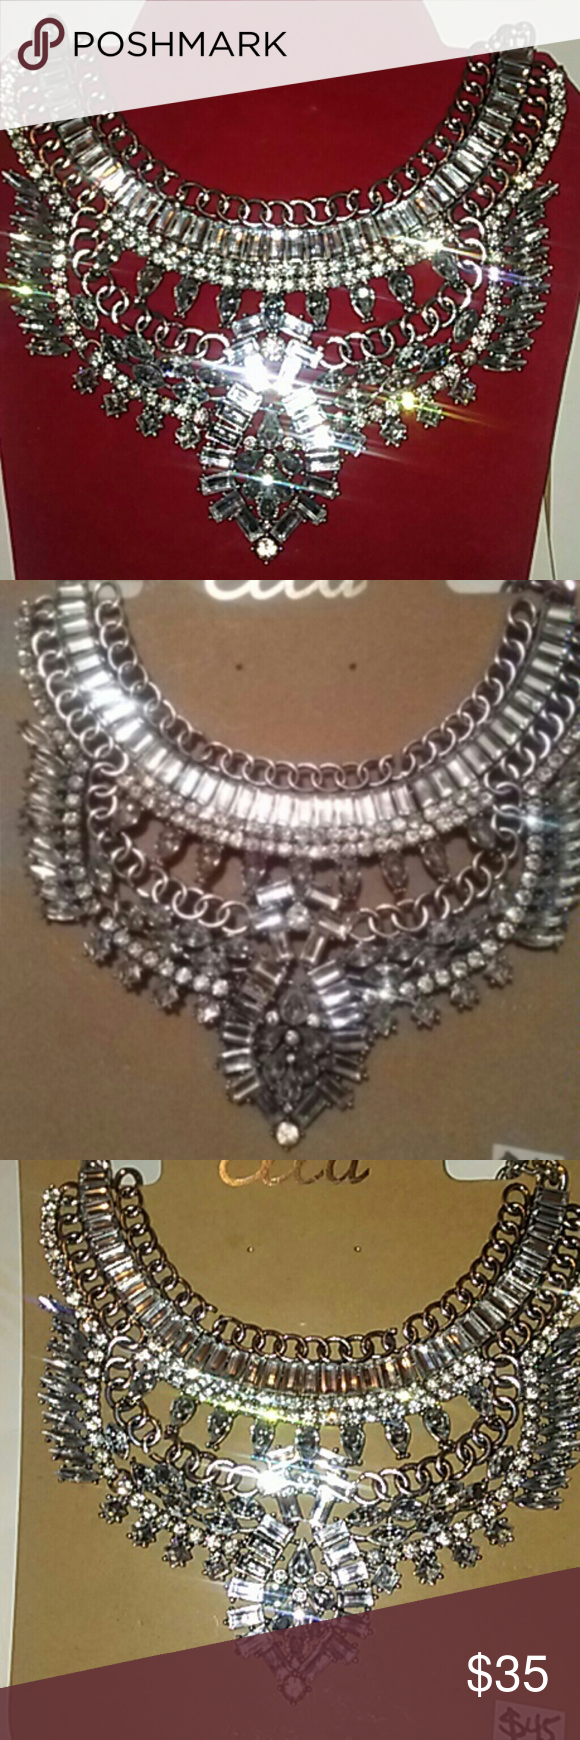 Necklace Fashionable Aztek/Bohemian style statement piece. Stunning stand alone piece or great for layering. Irresistible & one of a kind. Silver slightly rusty look with plenty bling. Jewelry Necklaces